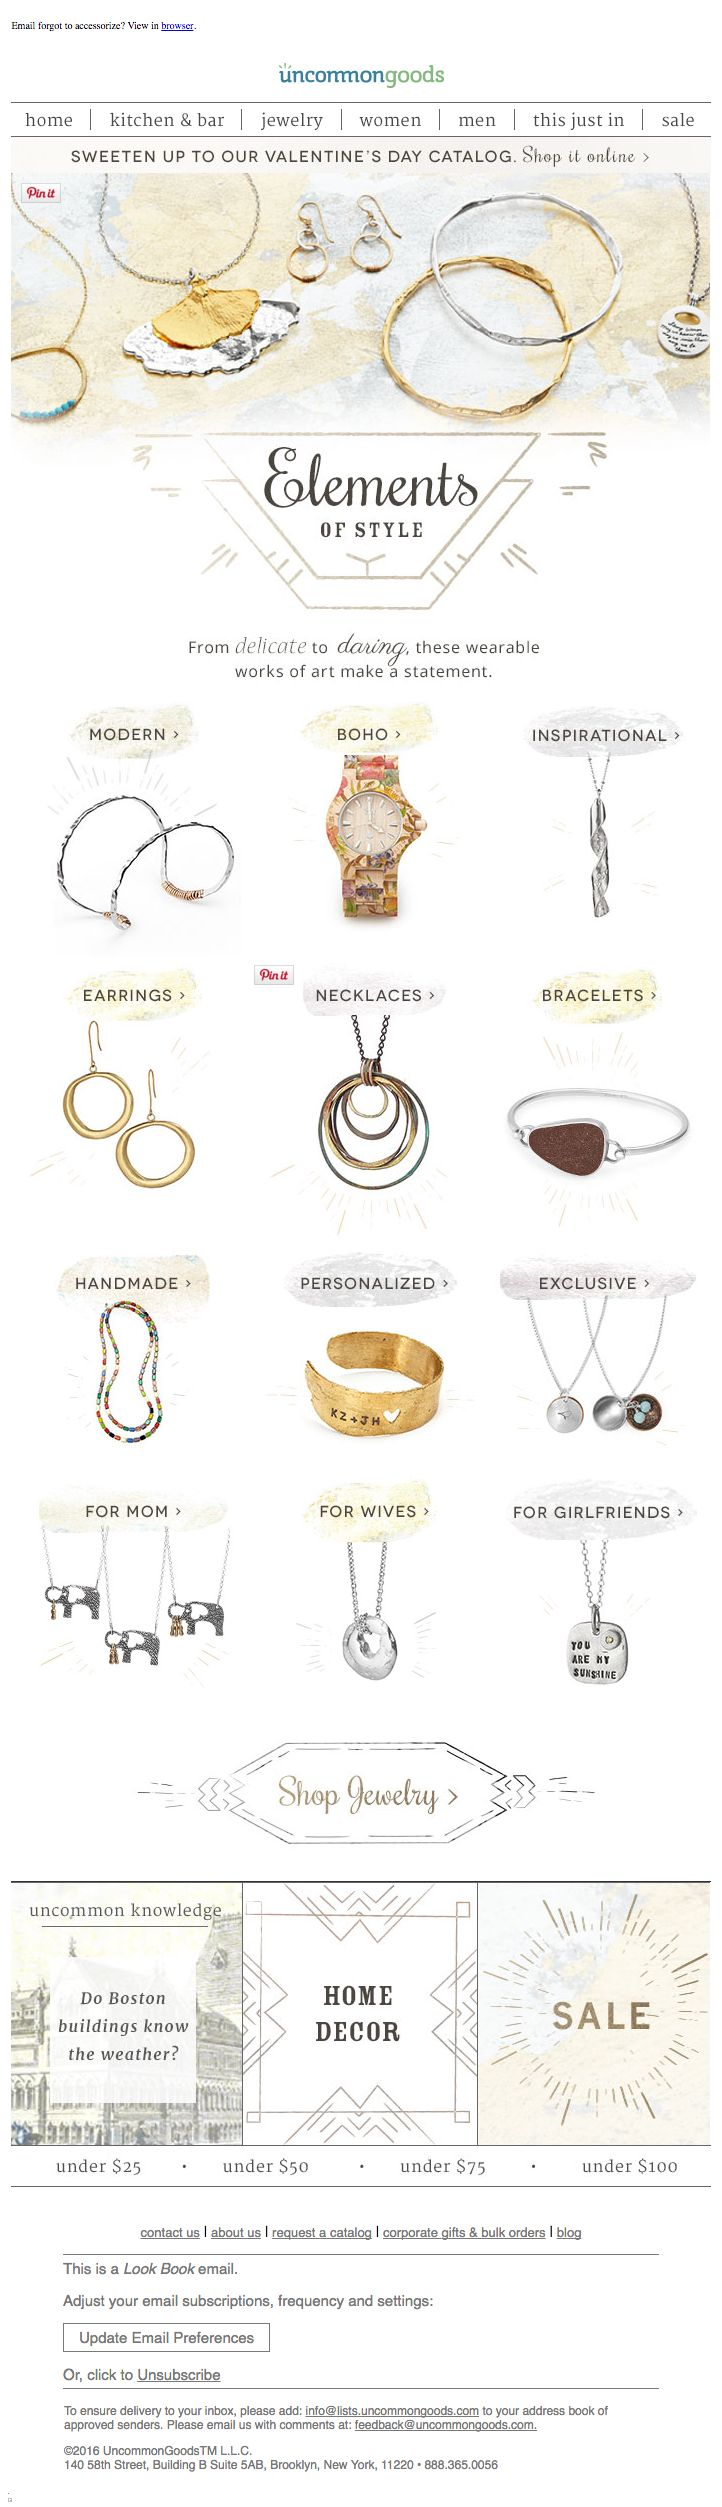 290 best Email - Holiday/Valentine's Day images on Pinterest ...